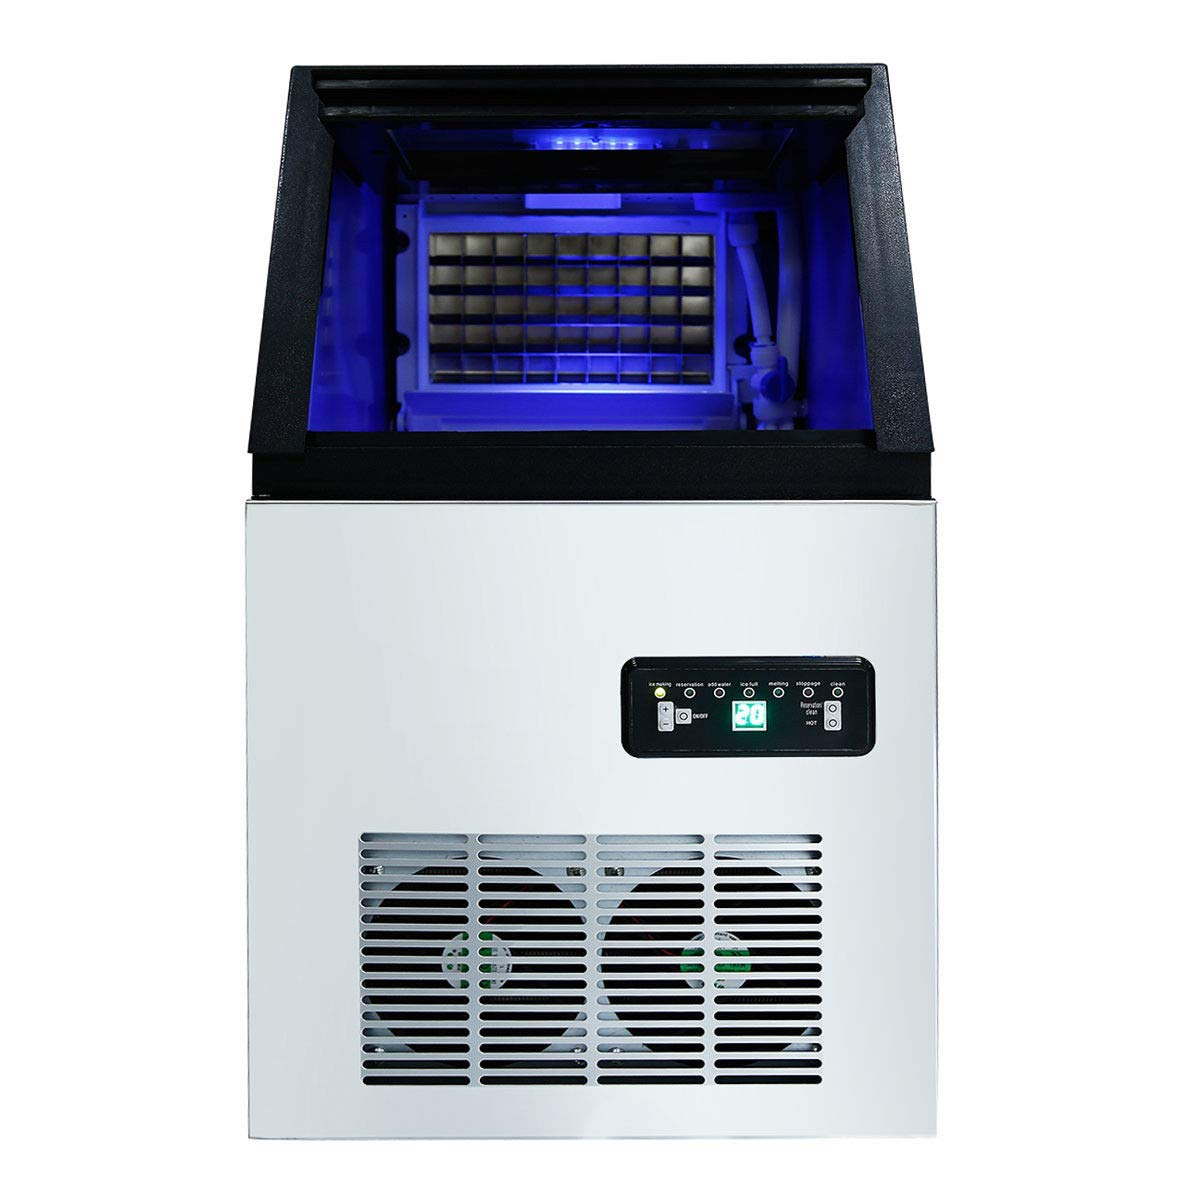 Tengchang Professional Commercial Ice Cube Maker Machine Ultraviolet Sterilizer 100LBS//24H Automatic Bulit-in